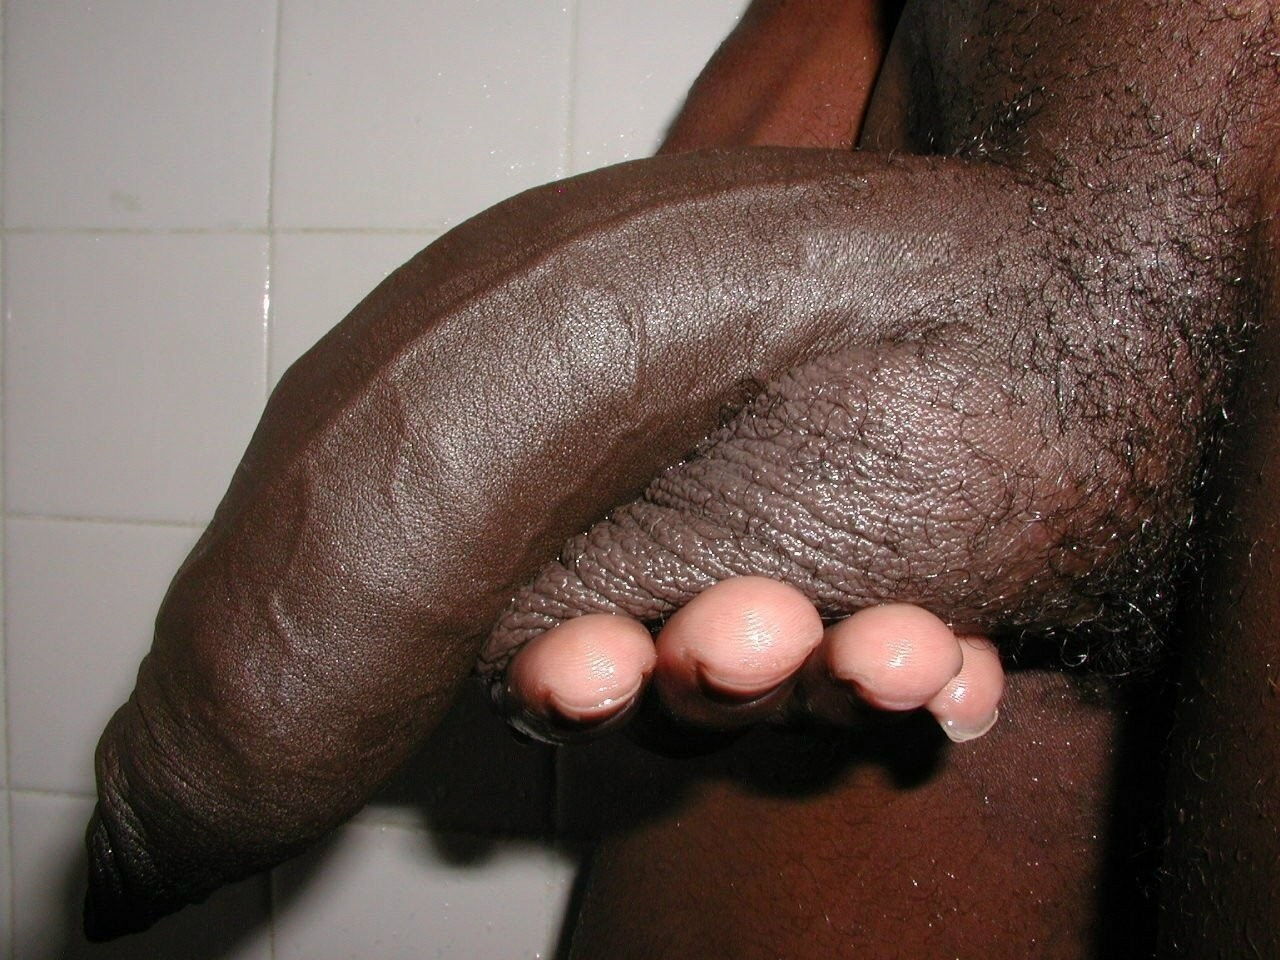 fuking-kelly-pictures-of-big-black-dick-nutting